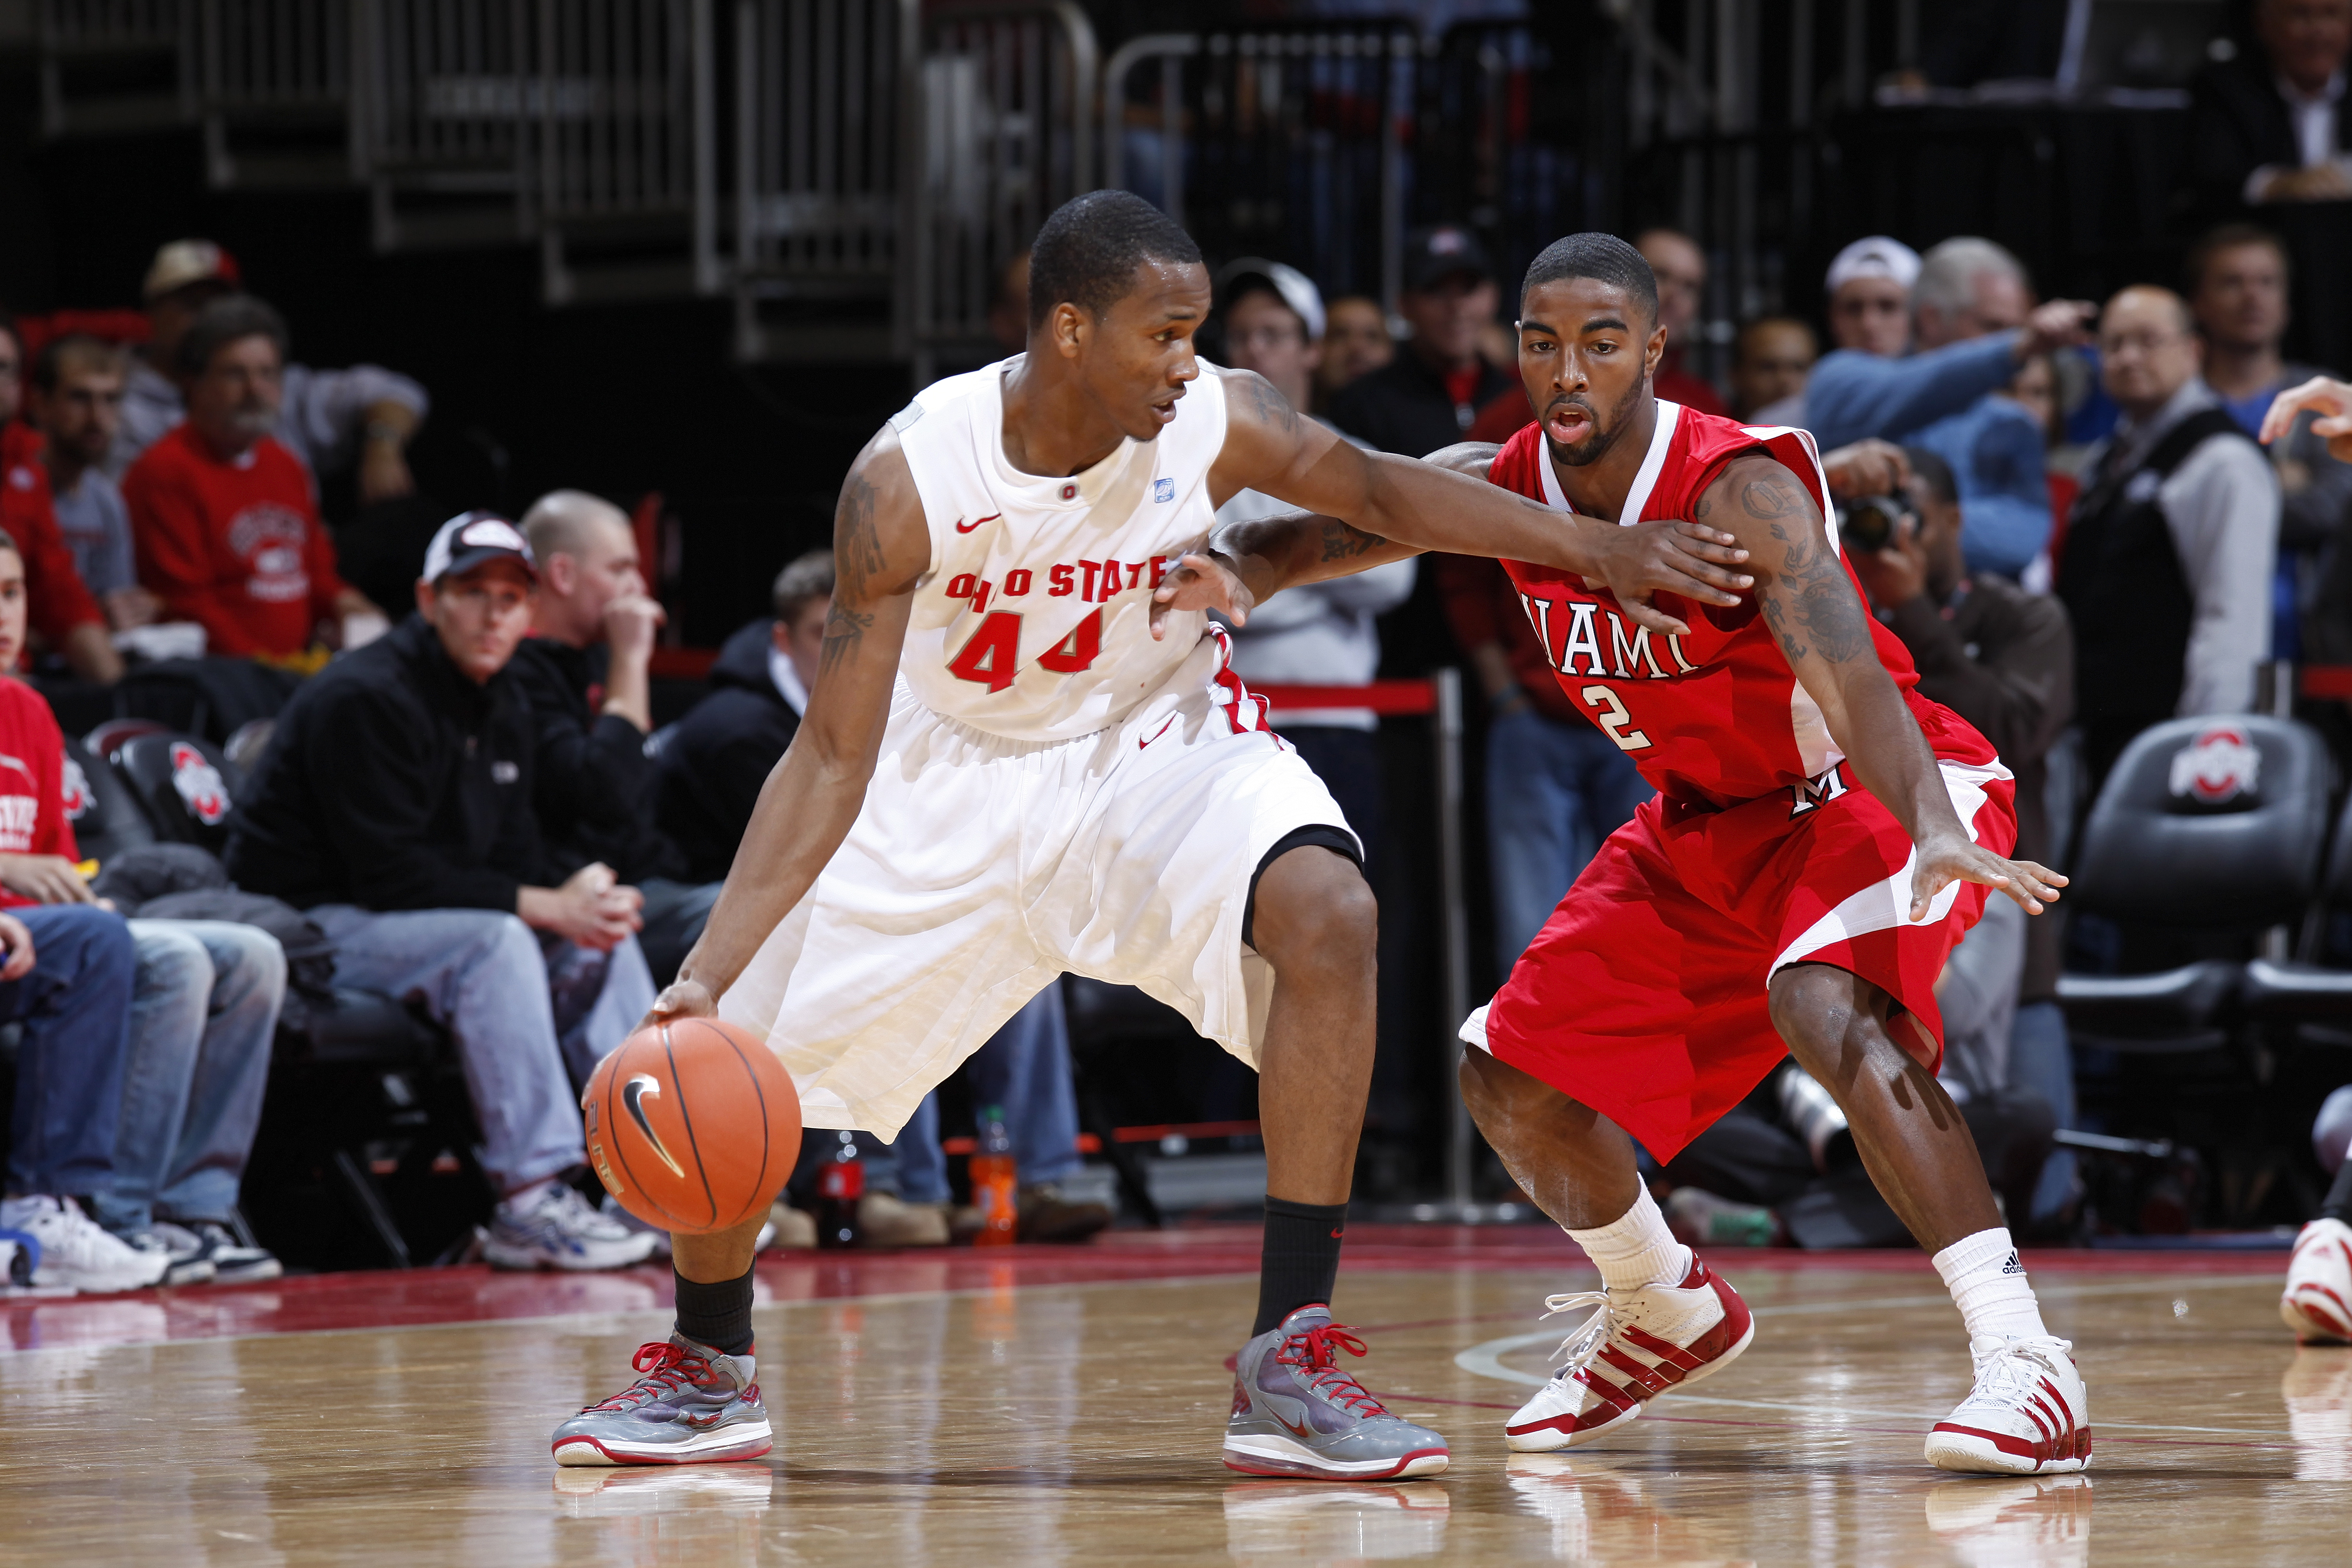 COLUMBUS, OH - NOVEMBER 26: William Buford #44 of the Ohio State Buckeyes tries to get to the basket against Quinten Rollins #2 of the Miami RedHawks at Value City Arena on November 26, 2010 in Columbus, Ohio. Ohio State won 66-45. (Photo by Joe Robbins/G